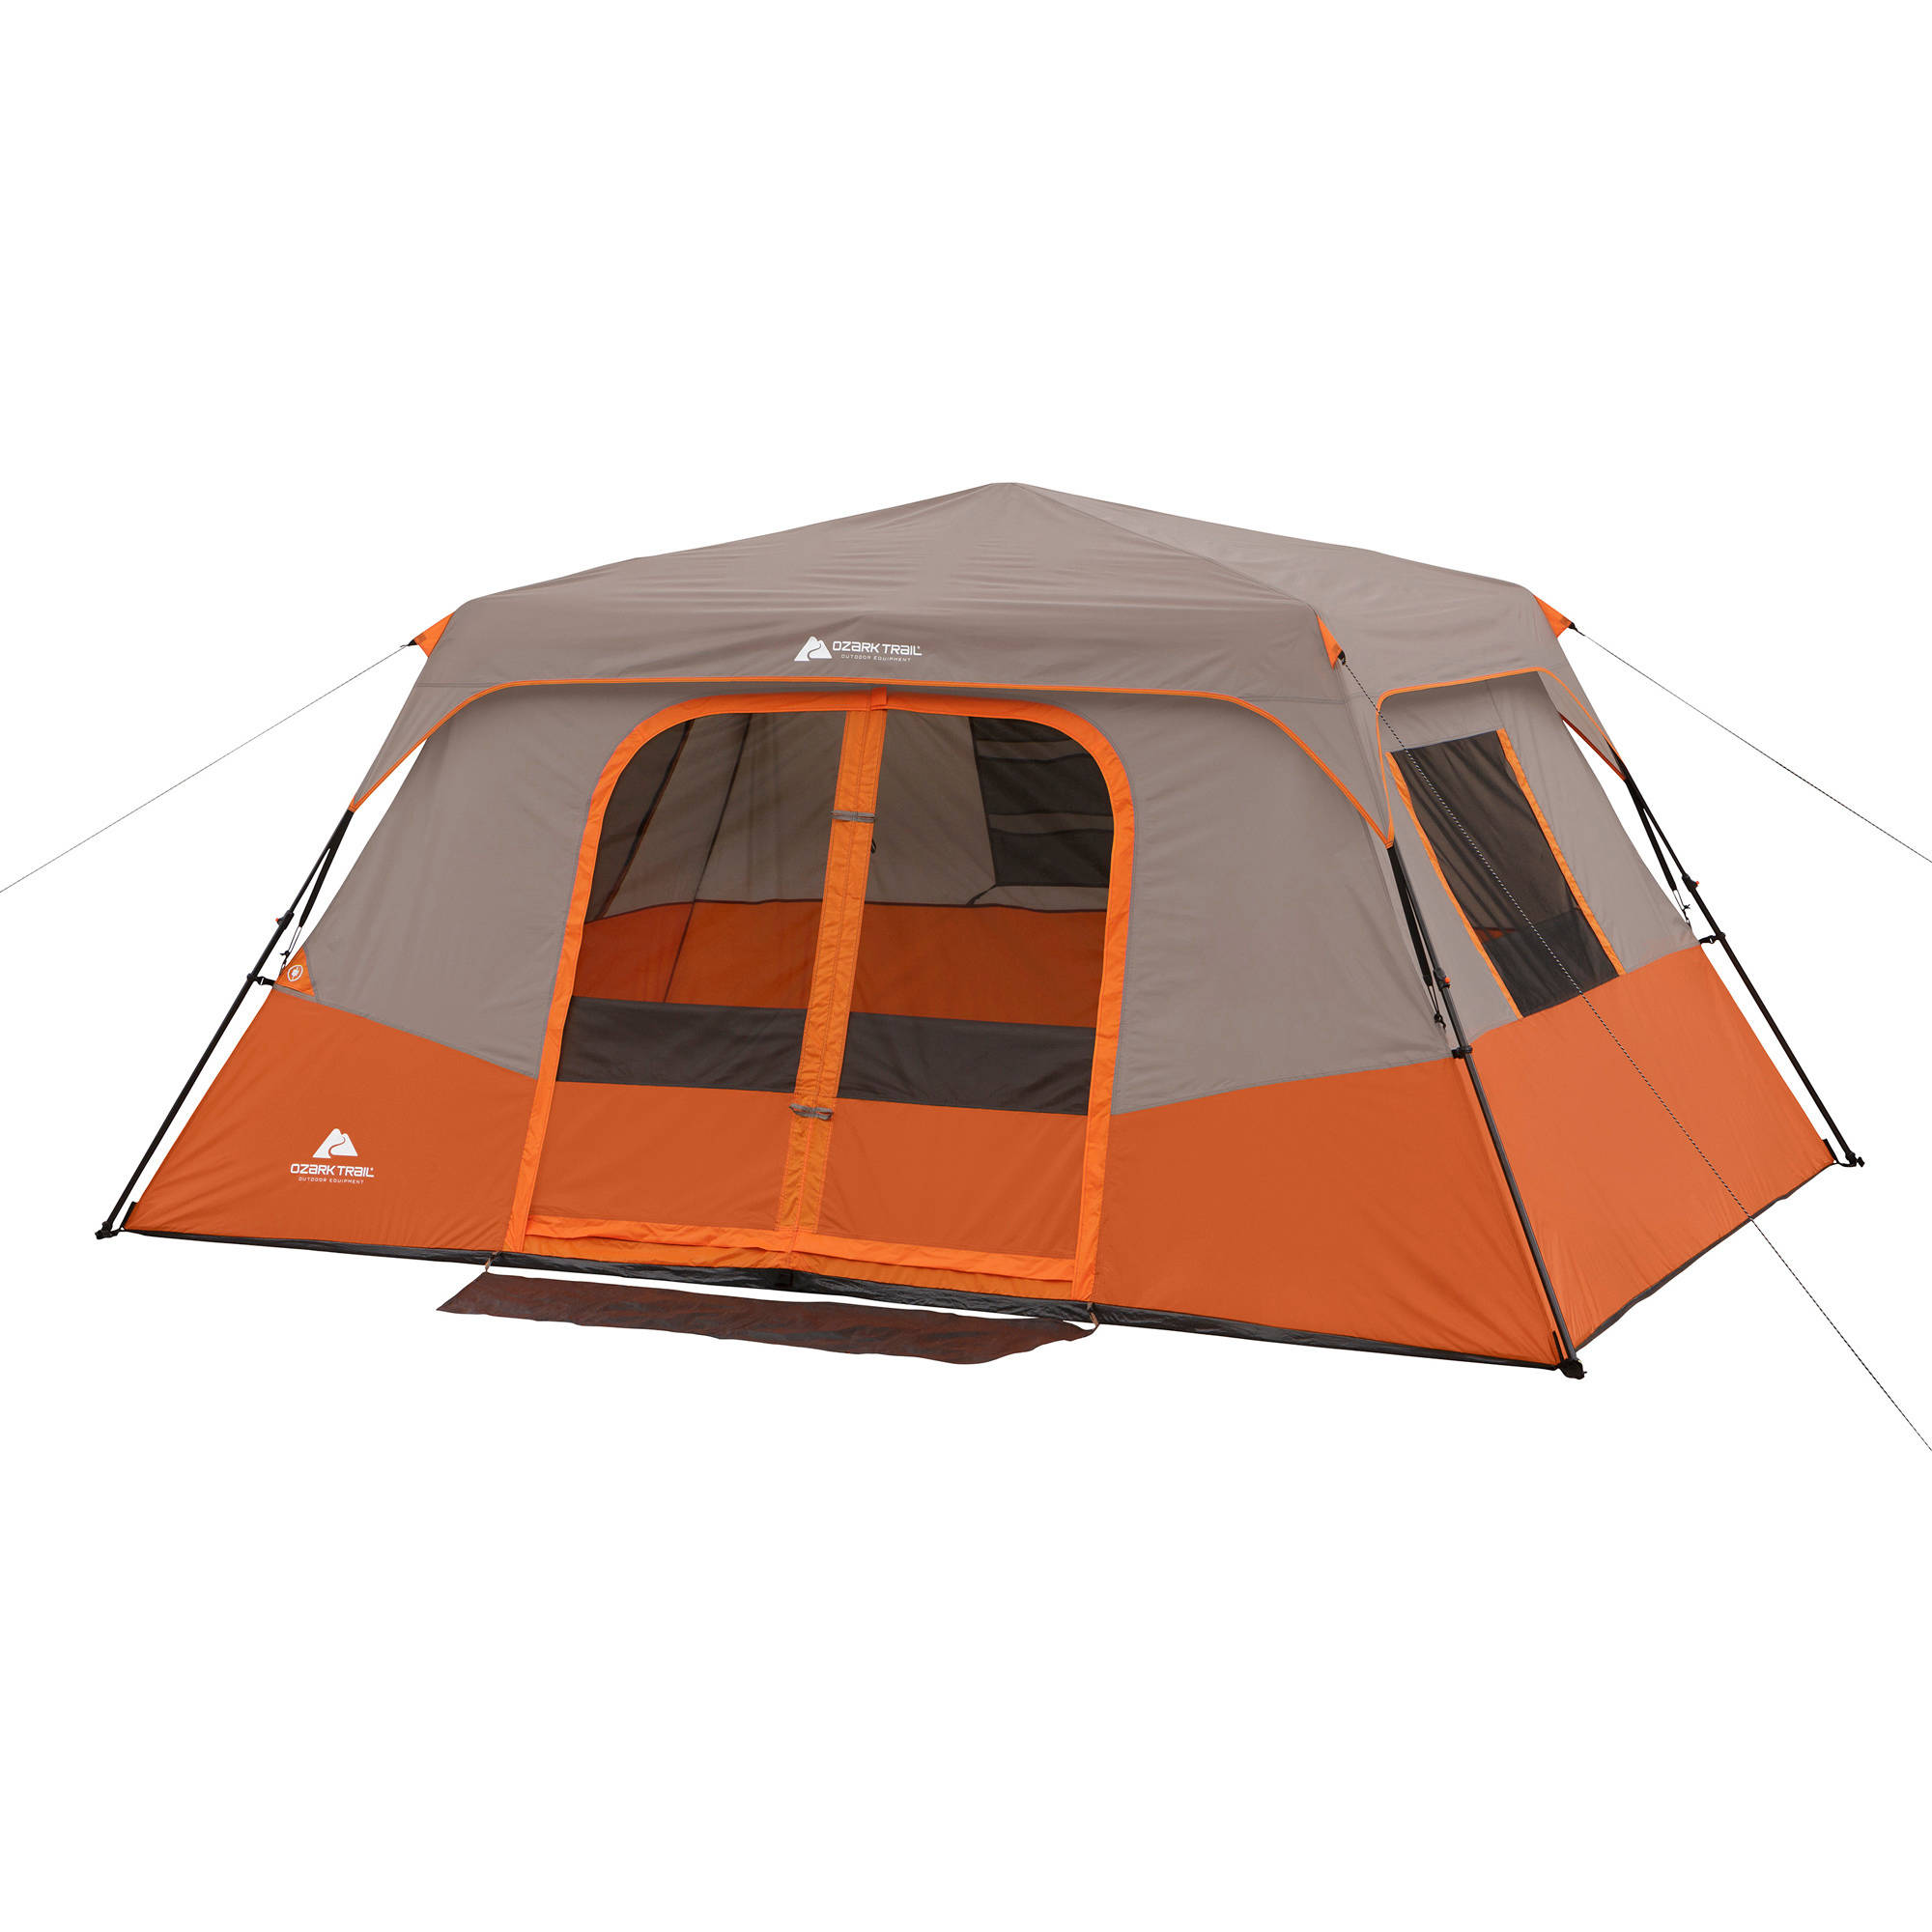 Ozark Trail Instant 13' x 9' Cabin Camping Tent, Sleeps 8